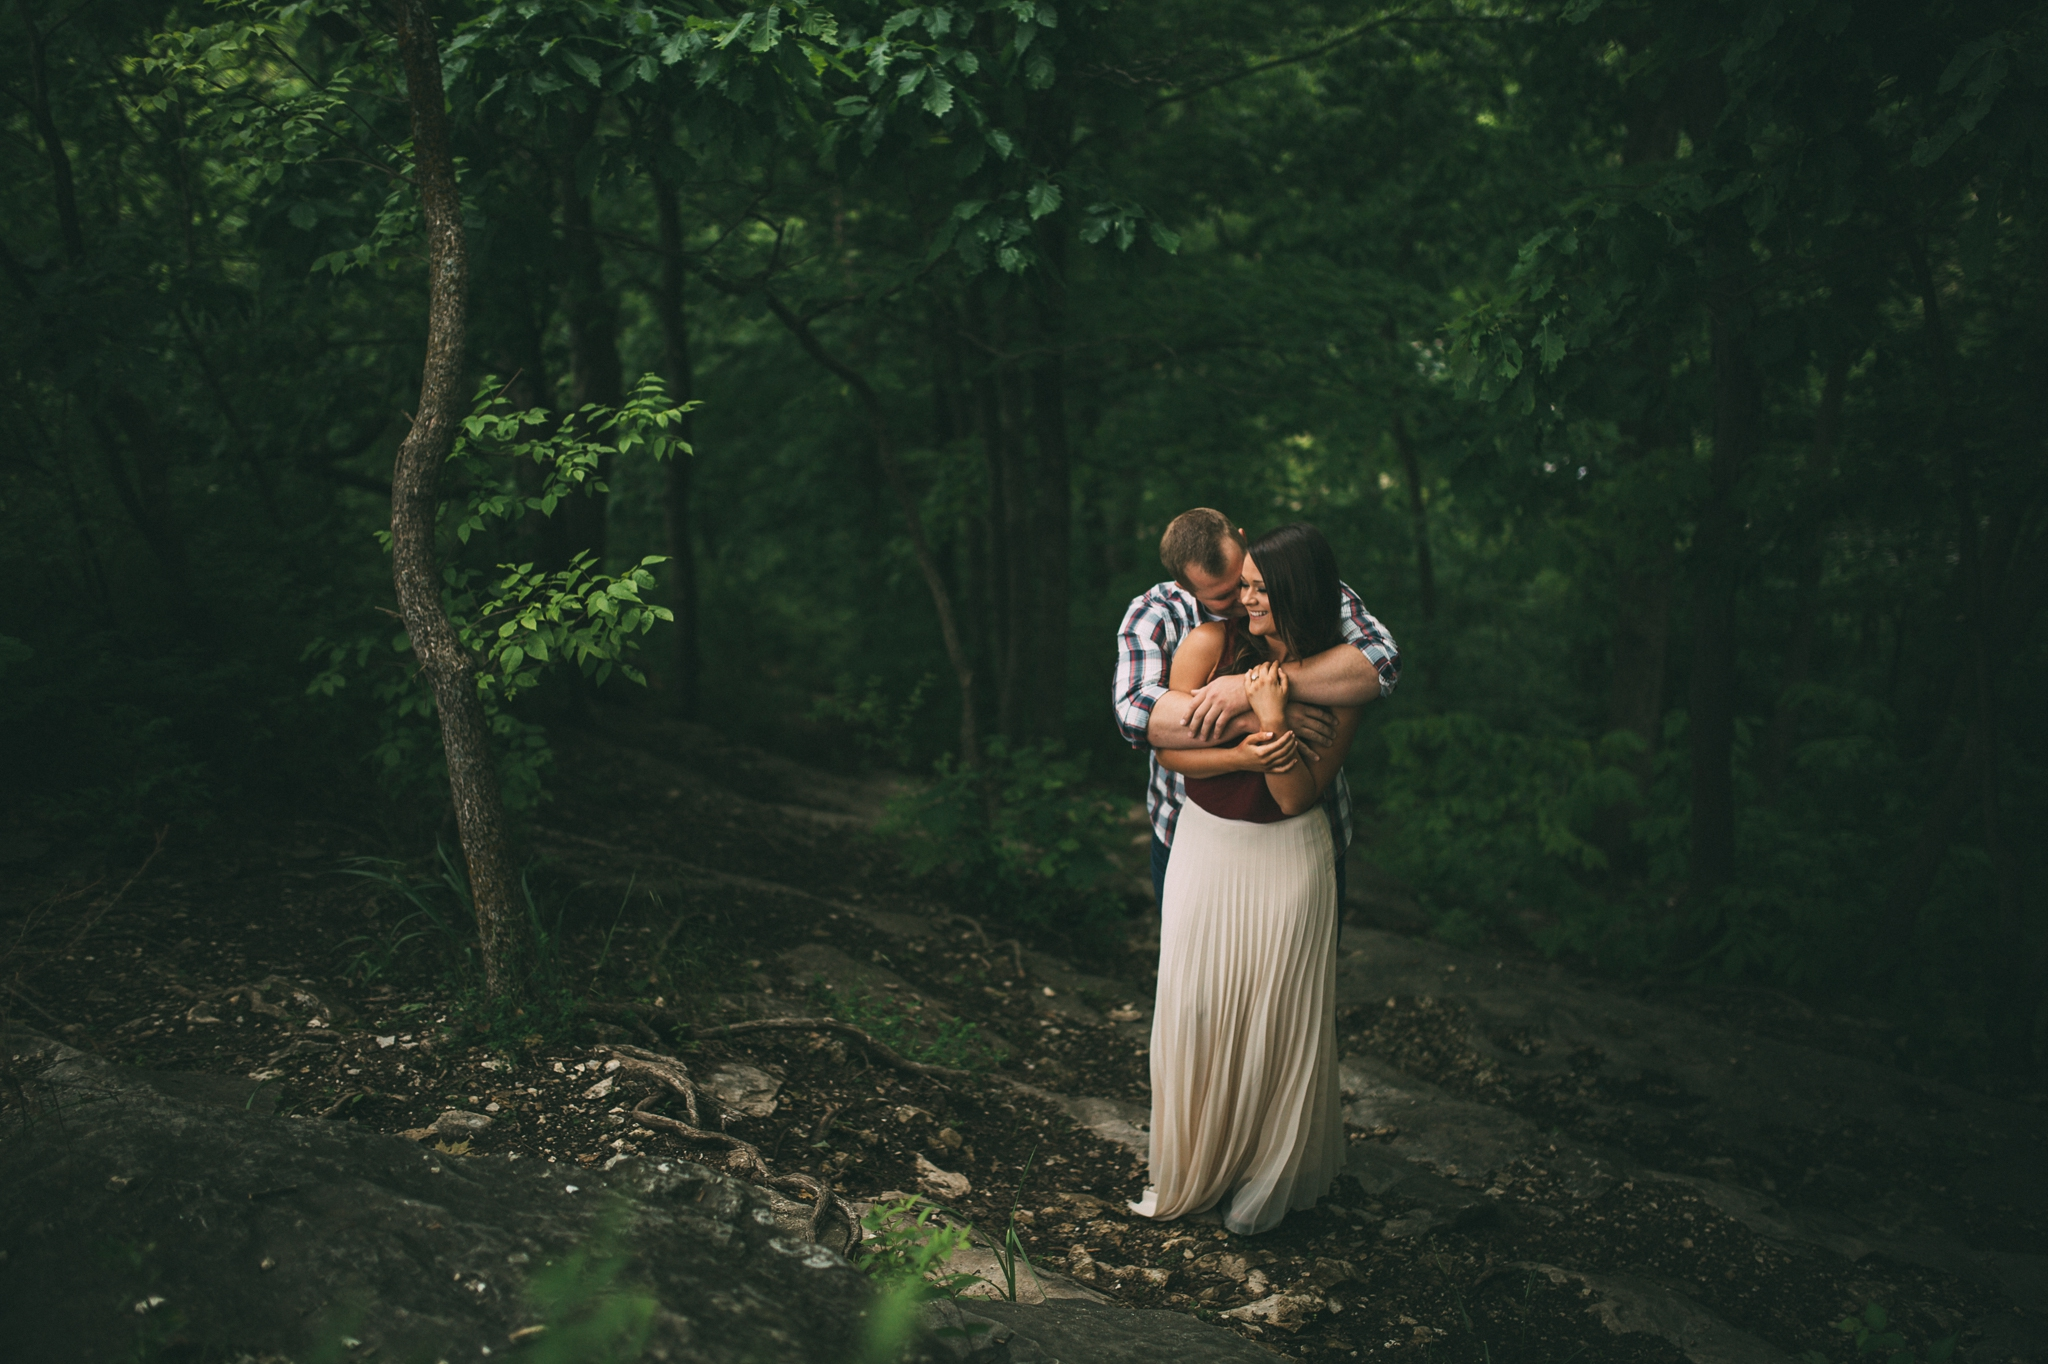 man and woman in nature surrounded by trees on an engagement shoot